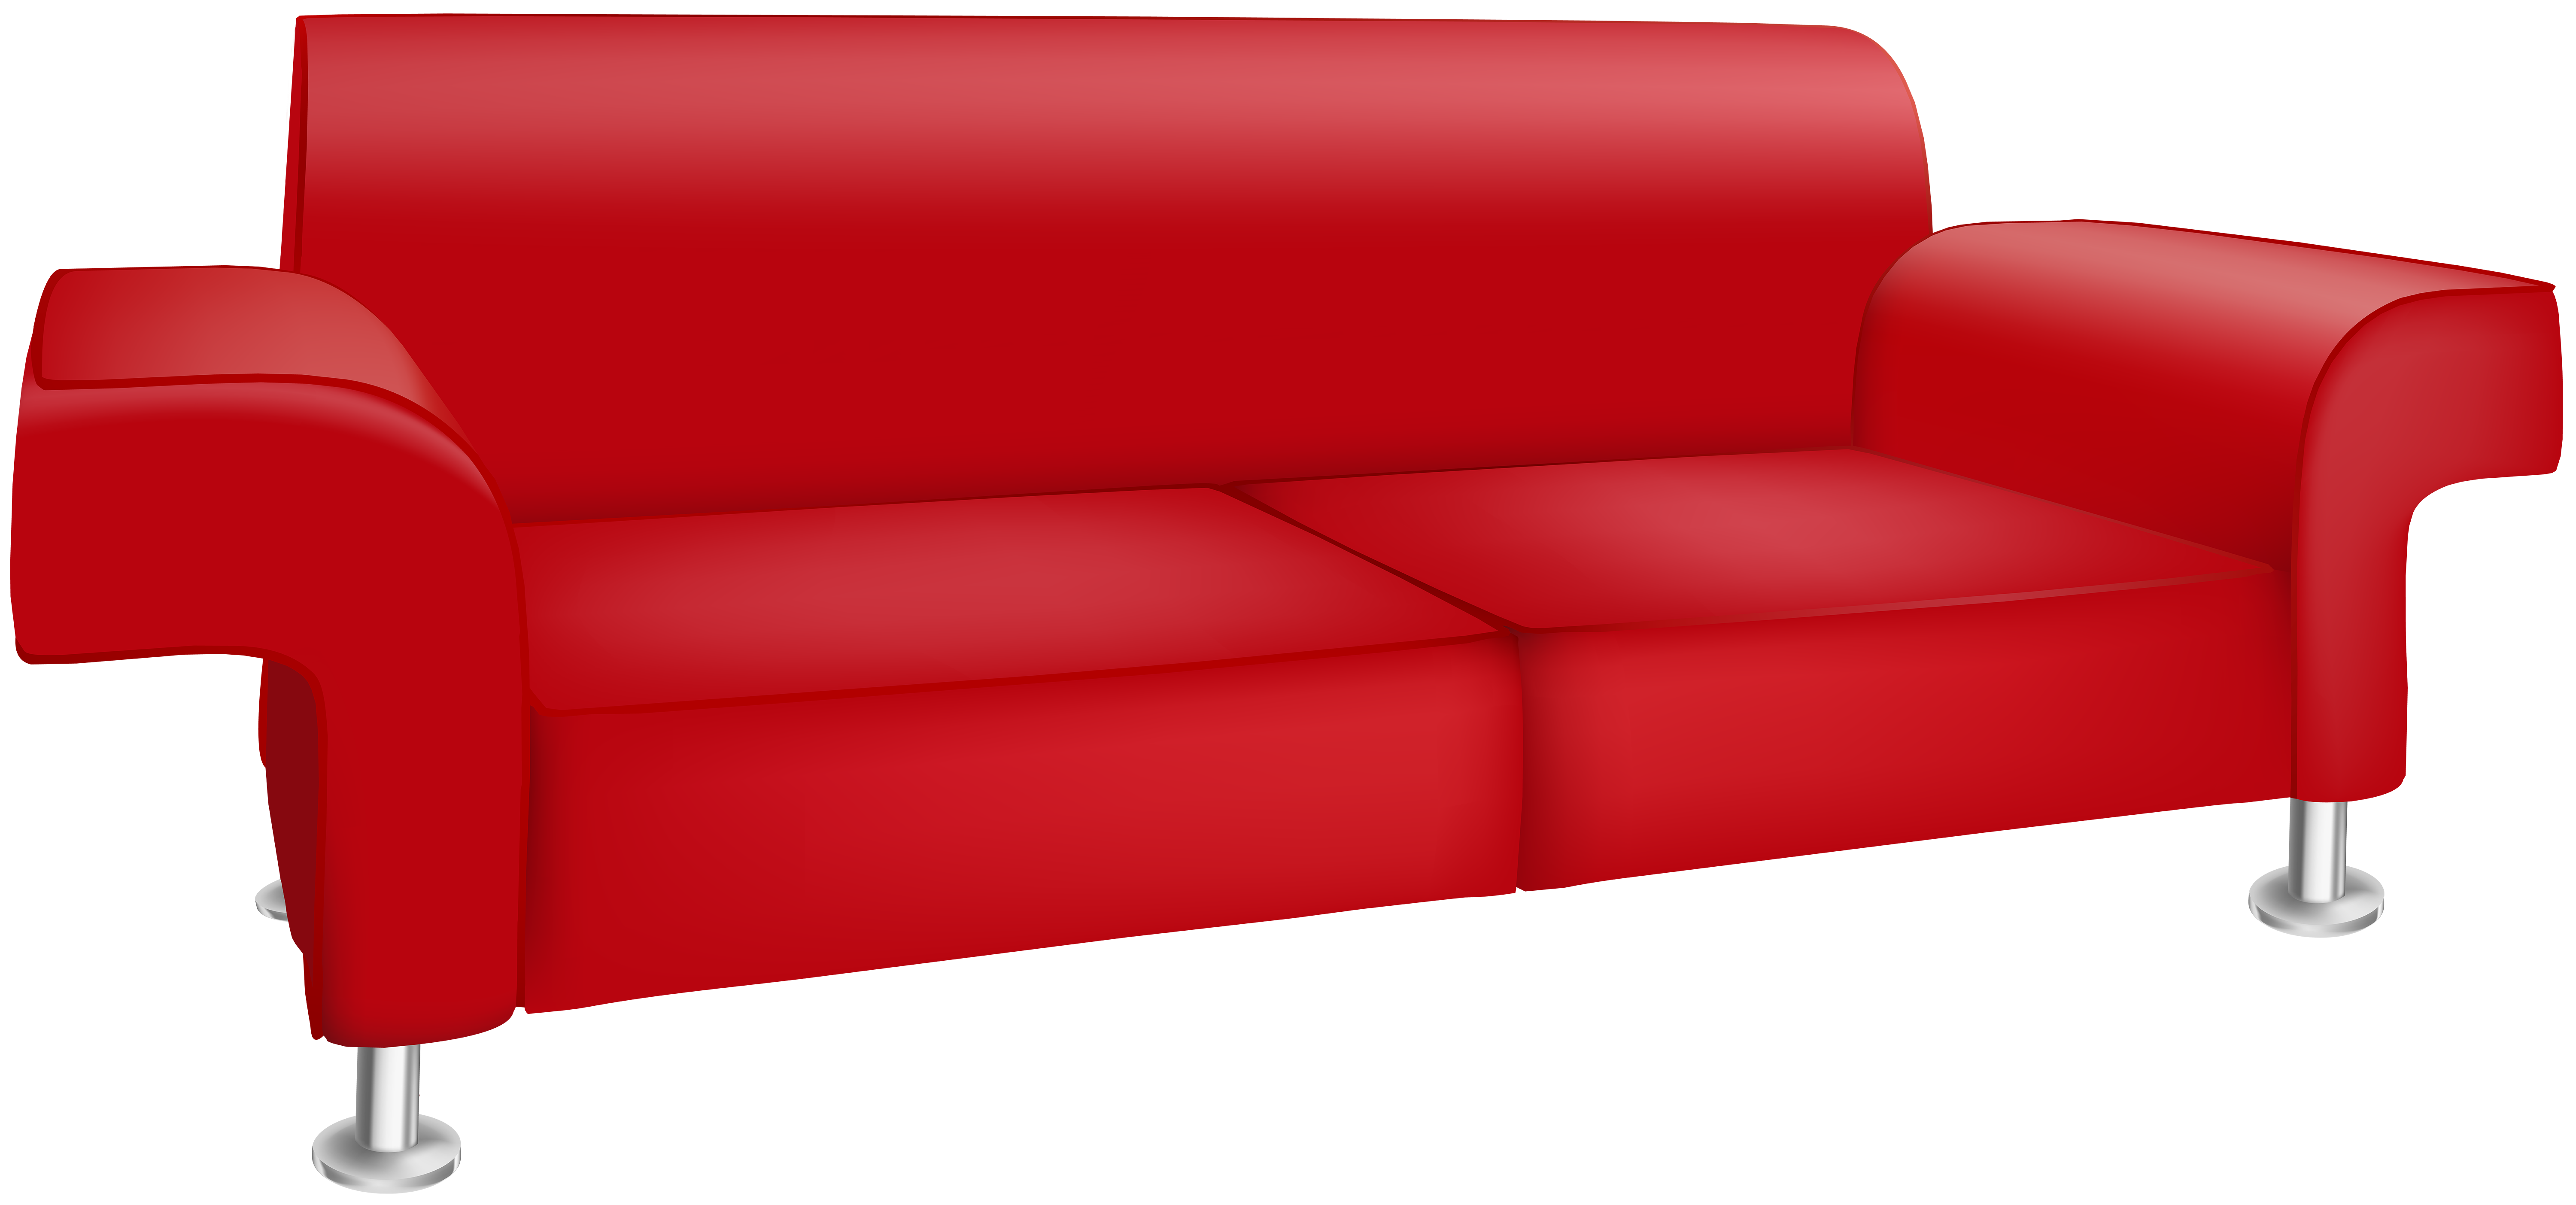 Couch clipart png. Red sofa transparent clip